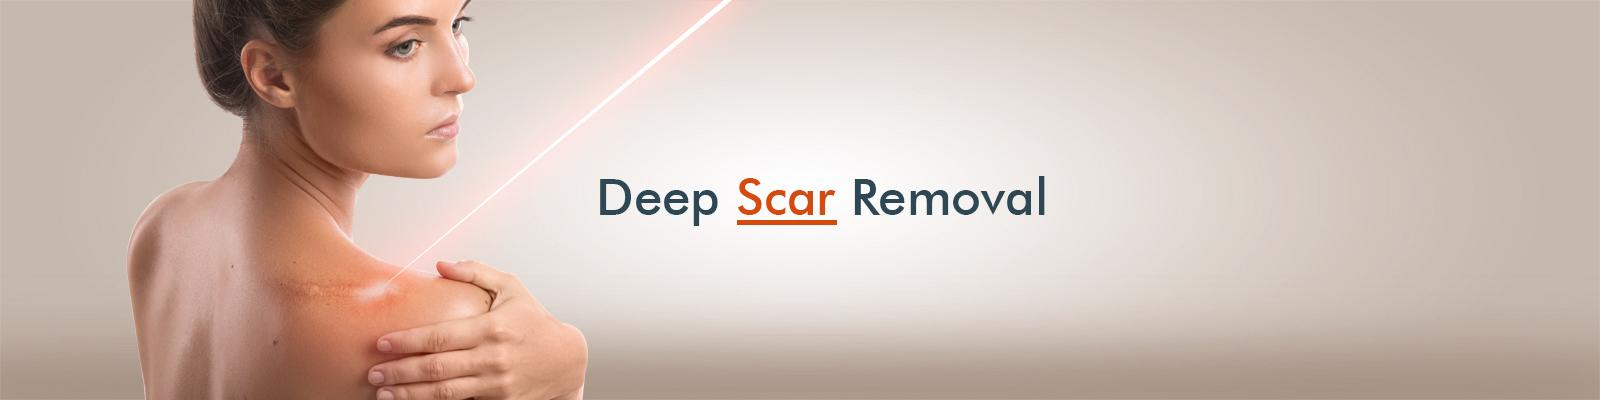 Deep Scar Removal And Stretch Marks Removal Treatments